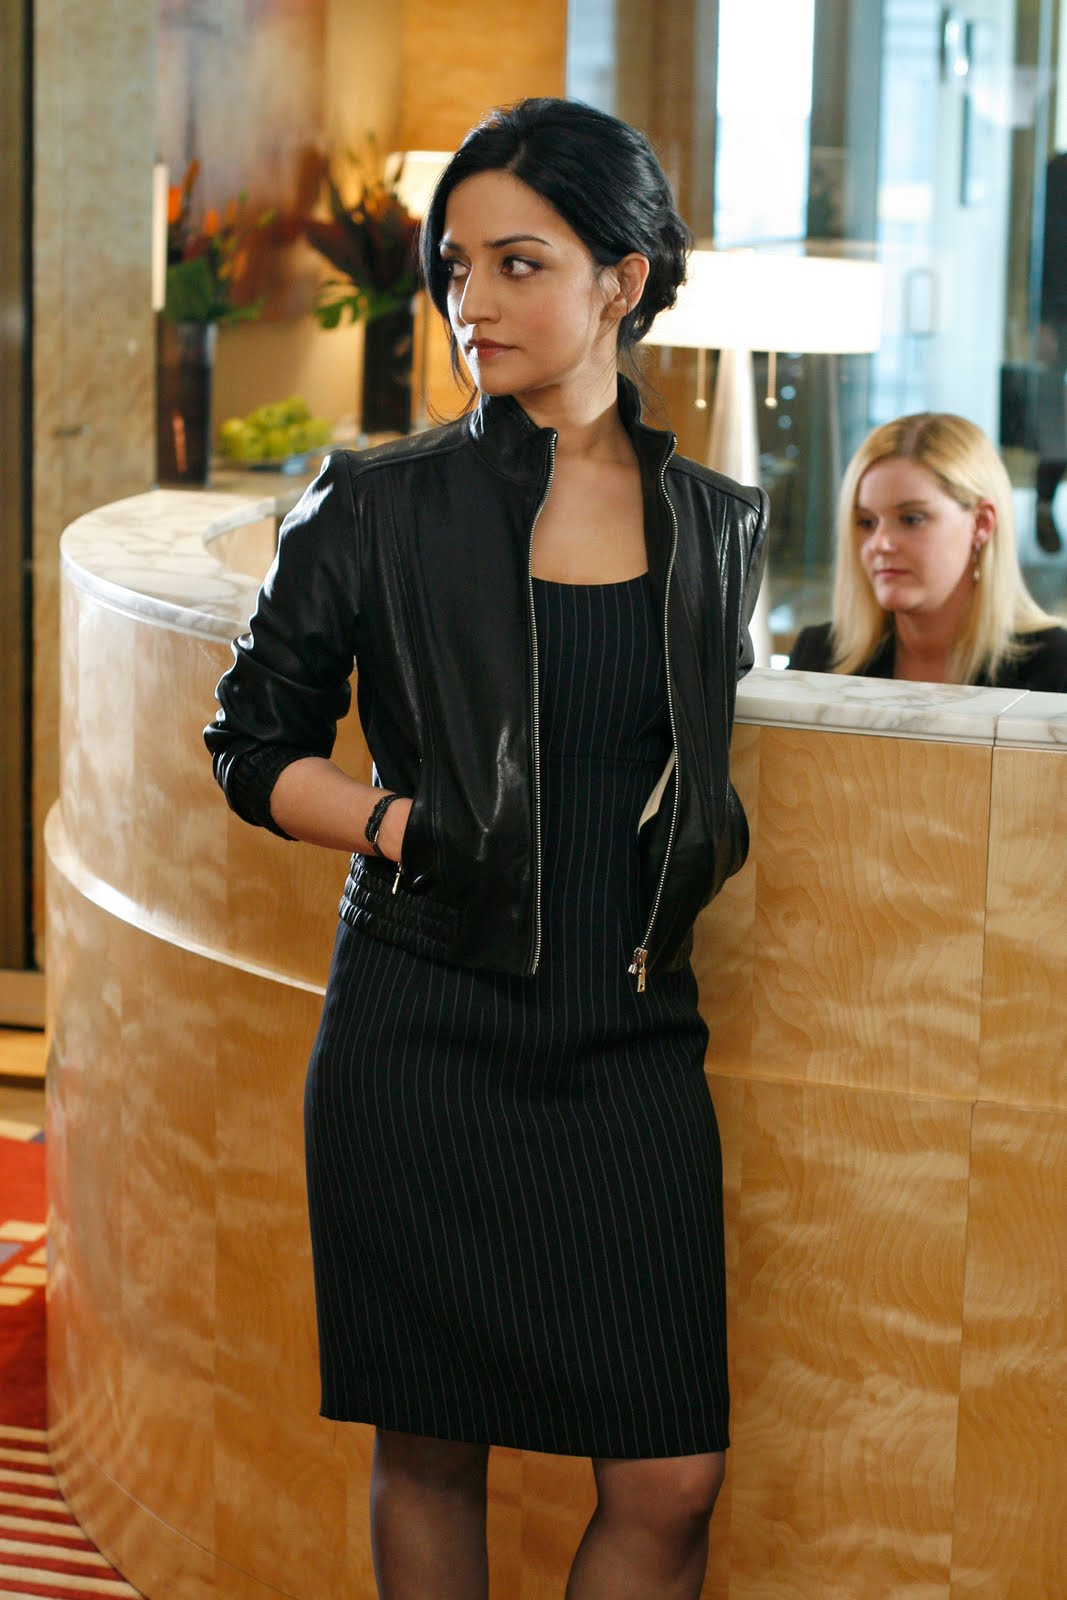 Kalinda good wife sexuality and reproduction